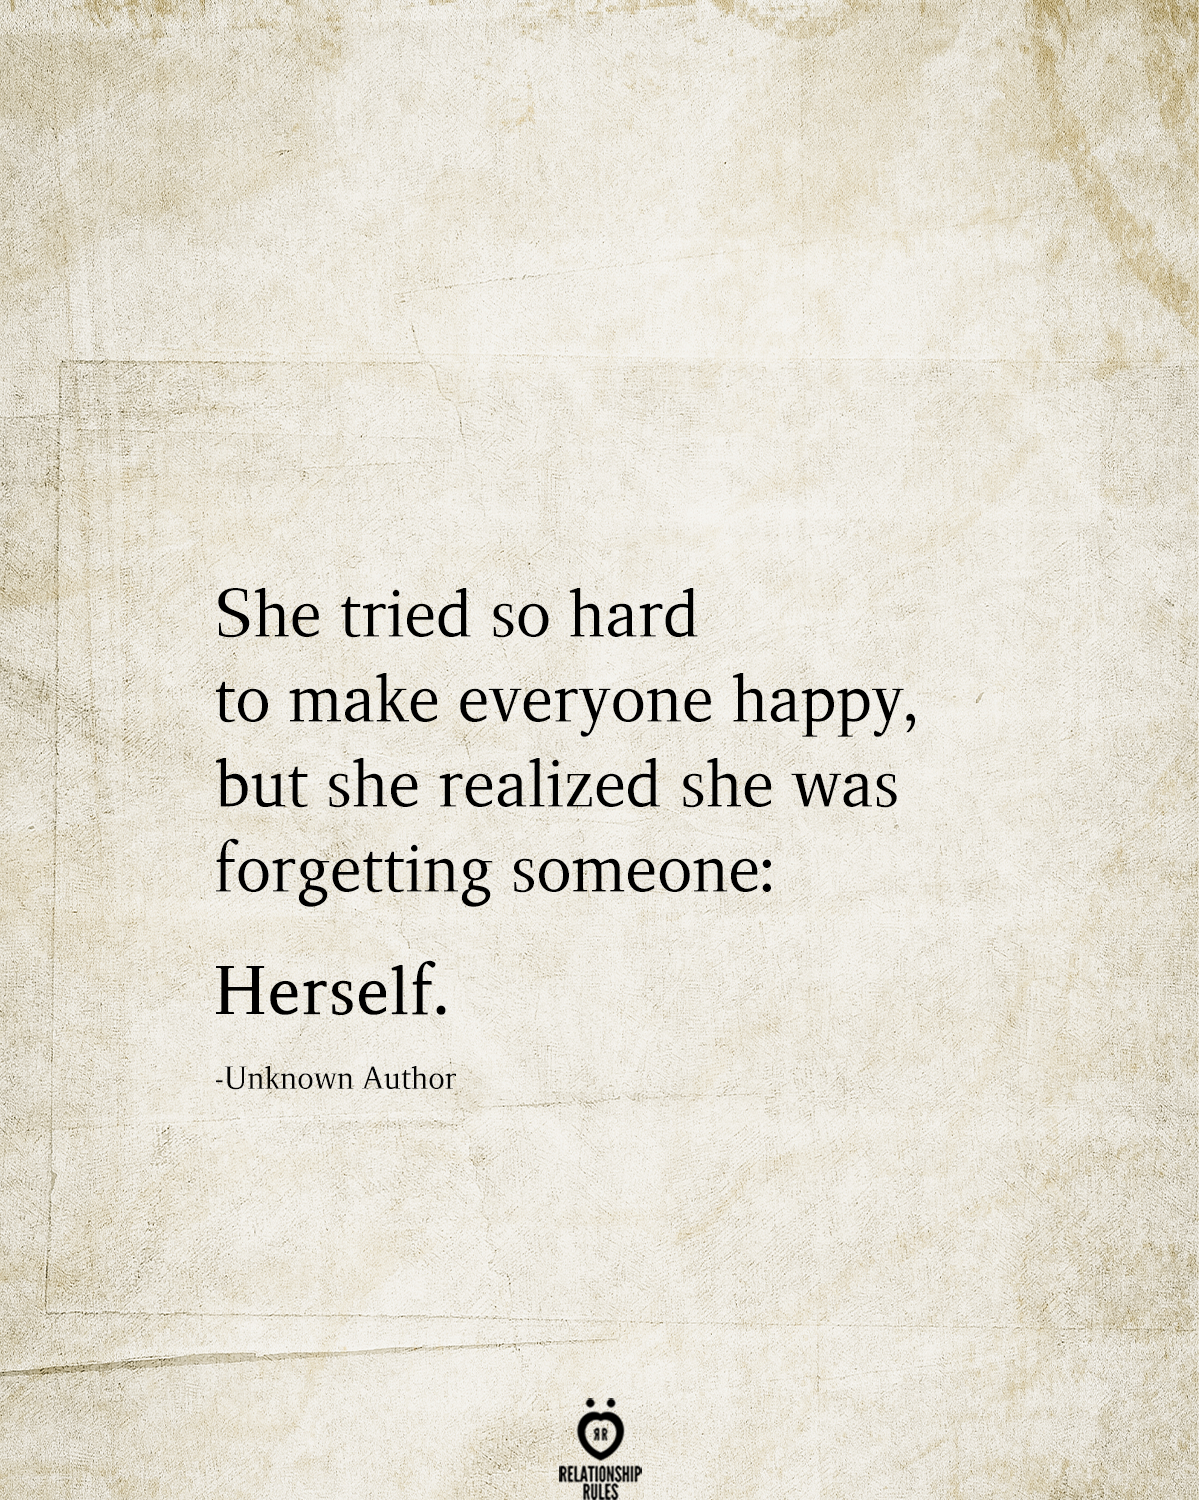 New Funny Laughing So Hard She Tried So Hard To Make Everyone Happy, But She Realized She Was Forgetting Someone: Herself She tried so hard to make everyone happy, but she realized she was forgetting someone: Herself. 2